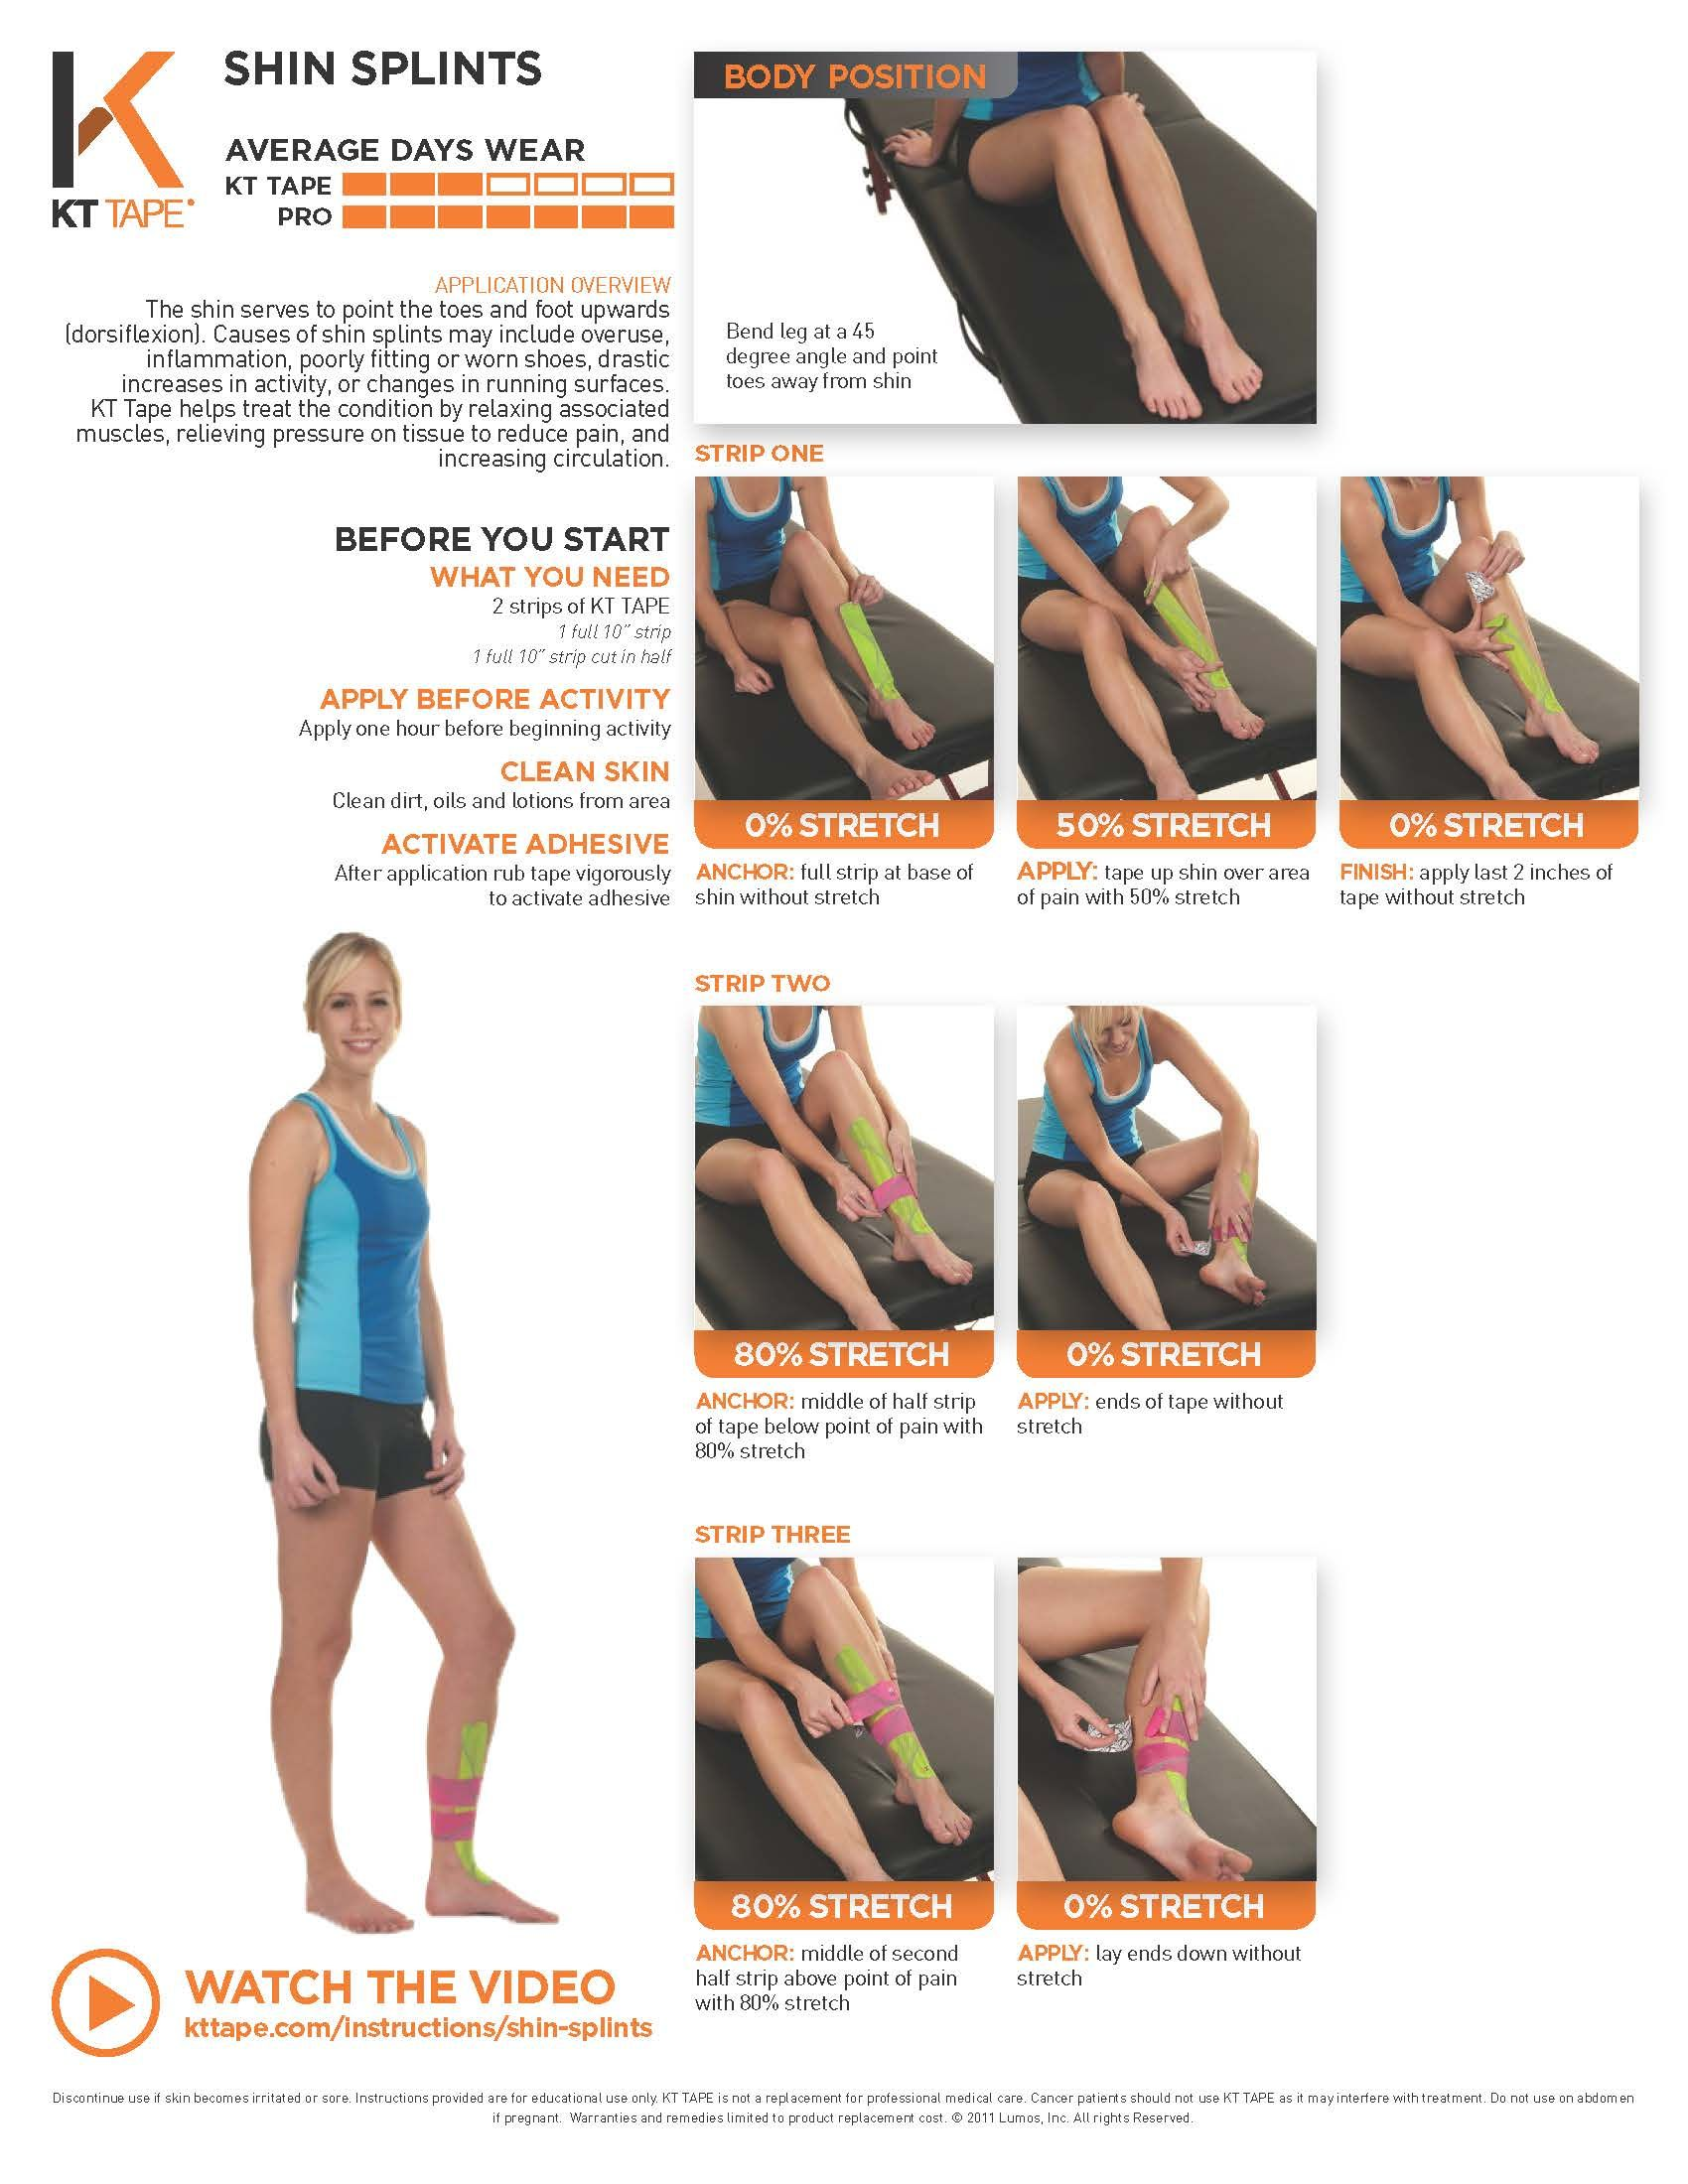 plantar fascia taping instructions